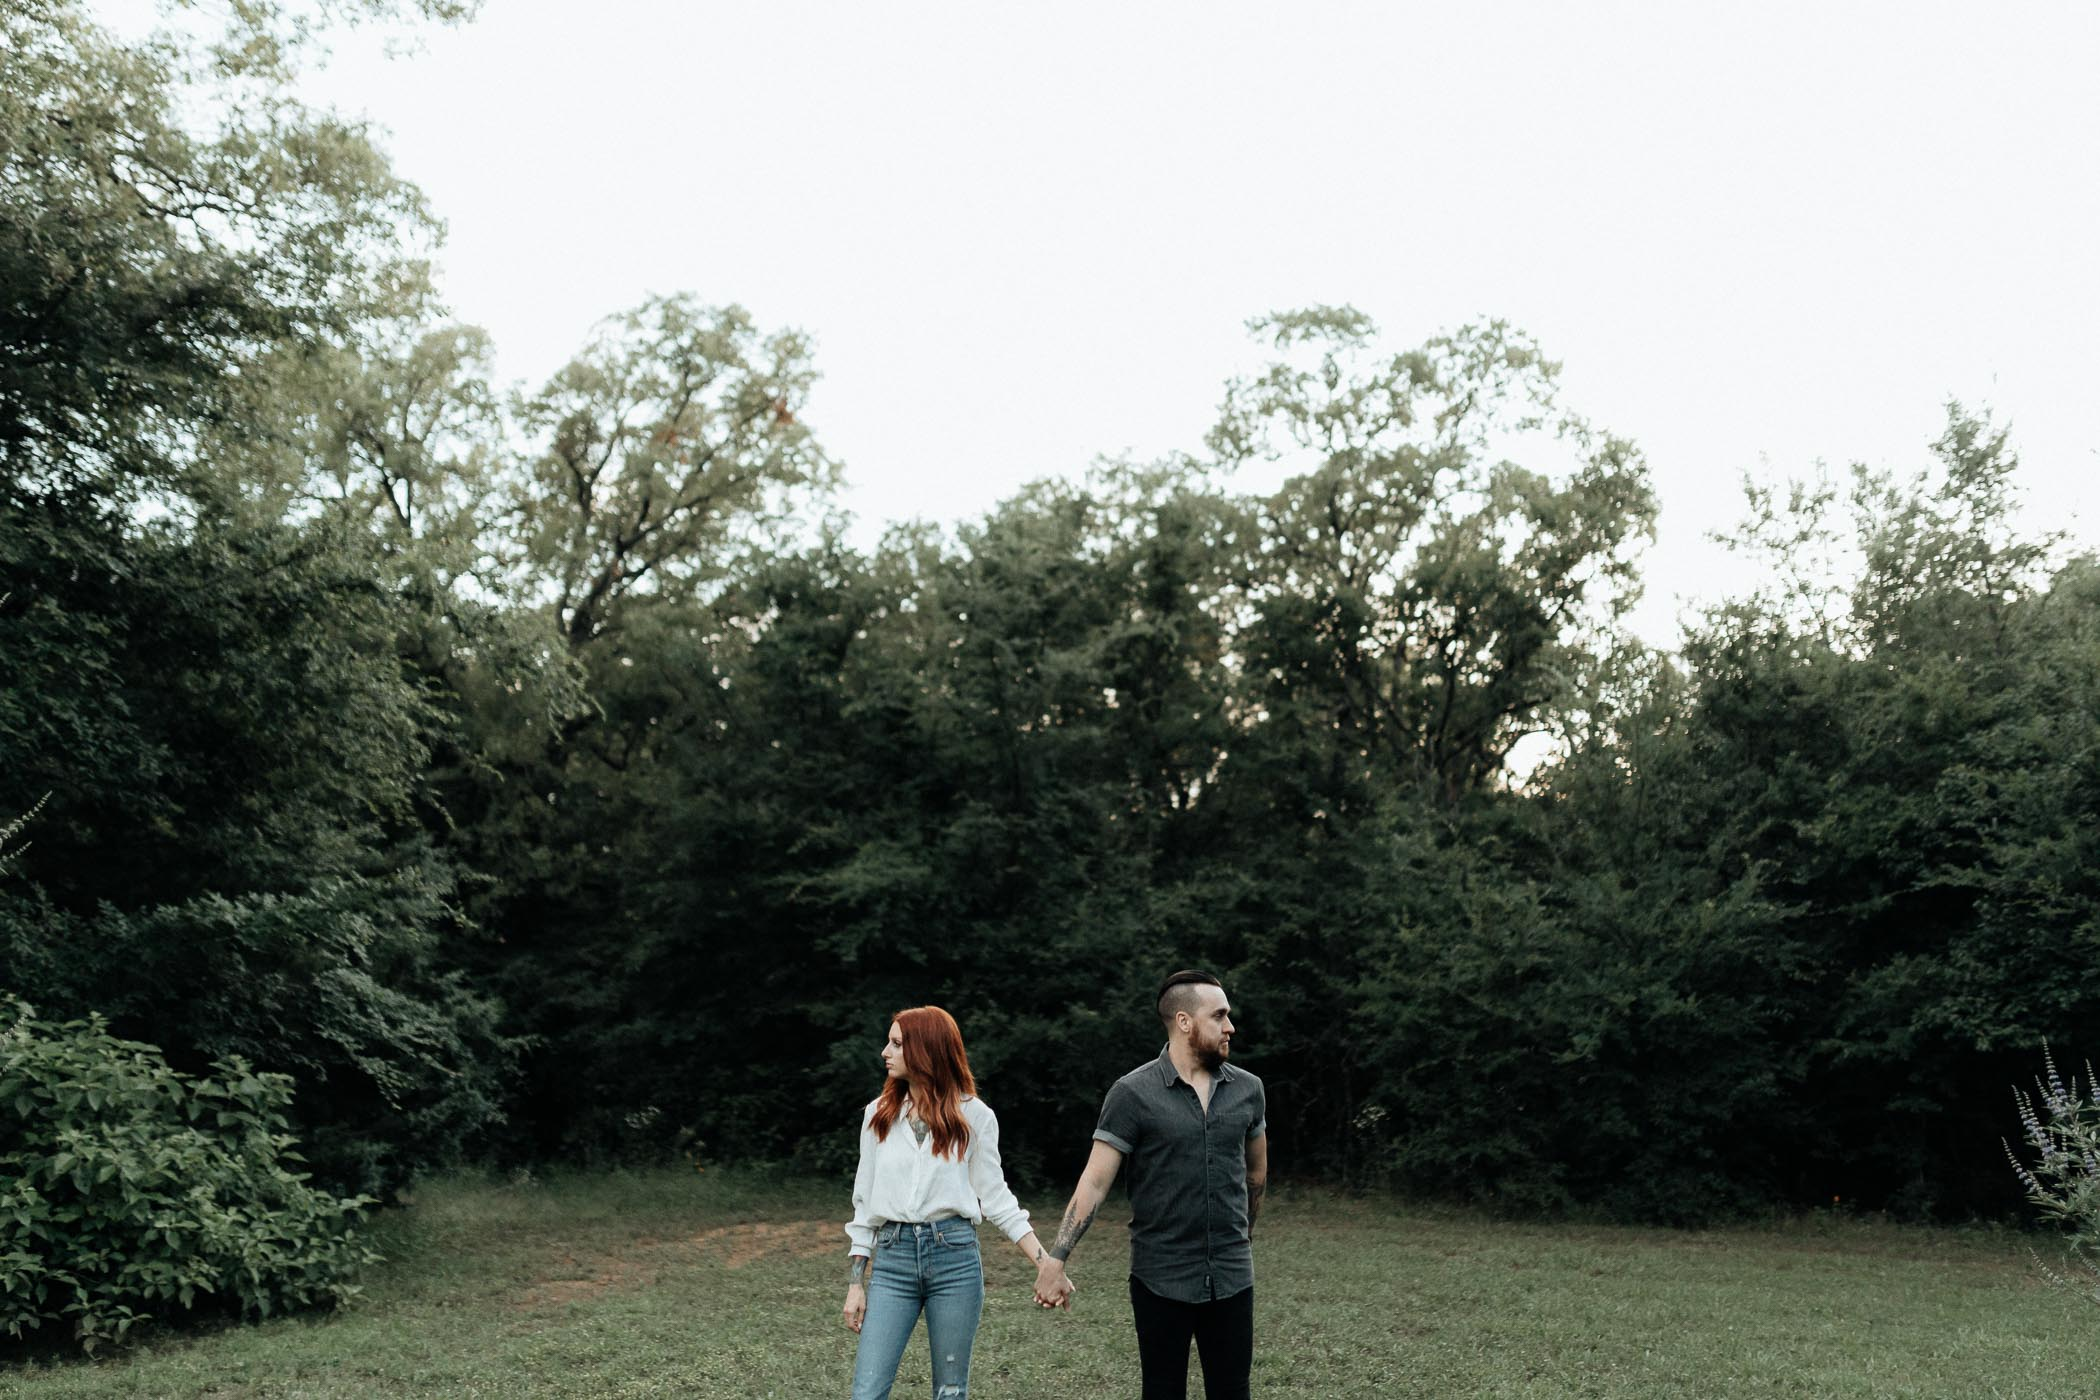 Woodsy moody engagement photos in DFW